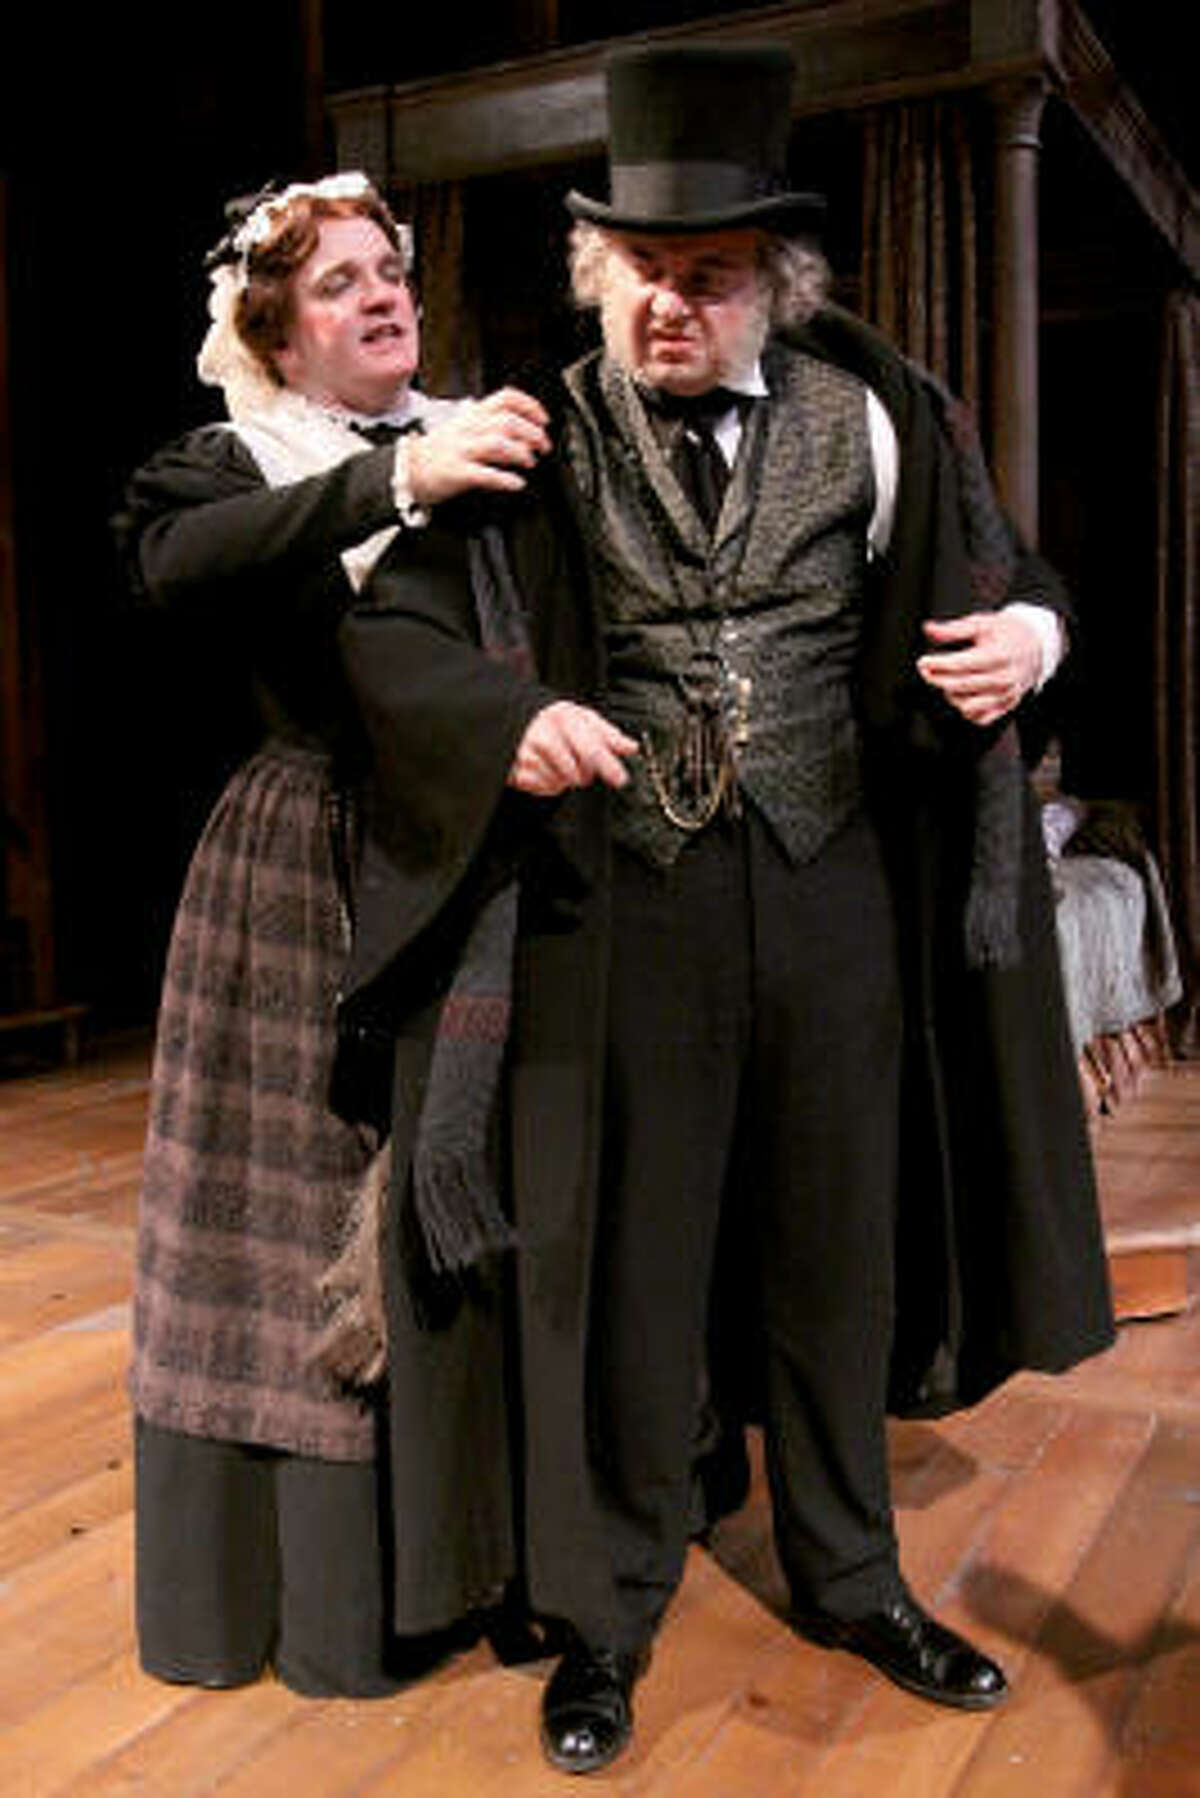 Yes, it's that time of year already. The Alley Theatre has brought back its annual production of Charles Dickens' A Christmas Carol, in Michael Wilson's durable adaptation. Carol previews at 7:30 p.m. Friday and 2:30 p.m. Saturday, opens at 7:30 p.m. Saturday, and continues through Dec. 27. The schedule varies, so call for details. Hubbard Stage, Alley Theatre, 615 Texas.